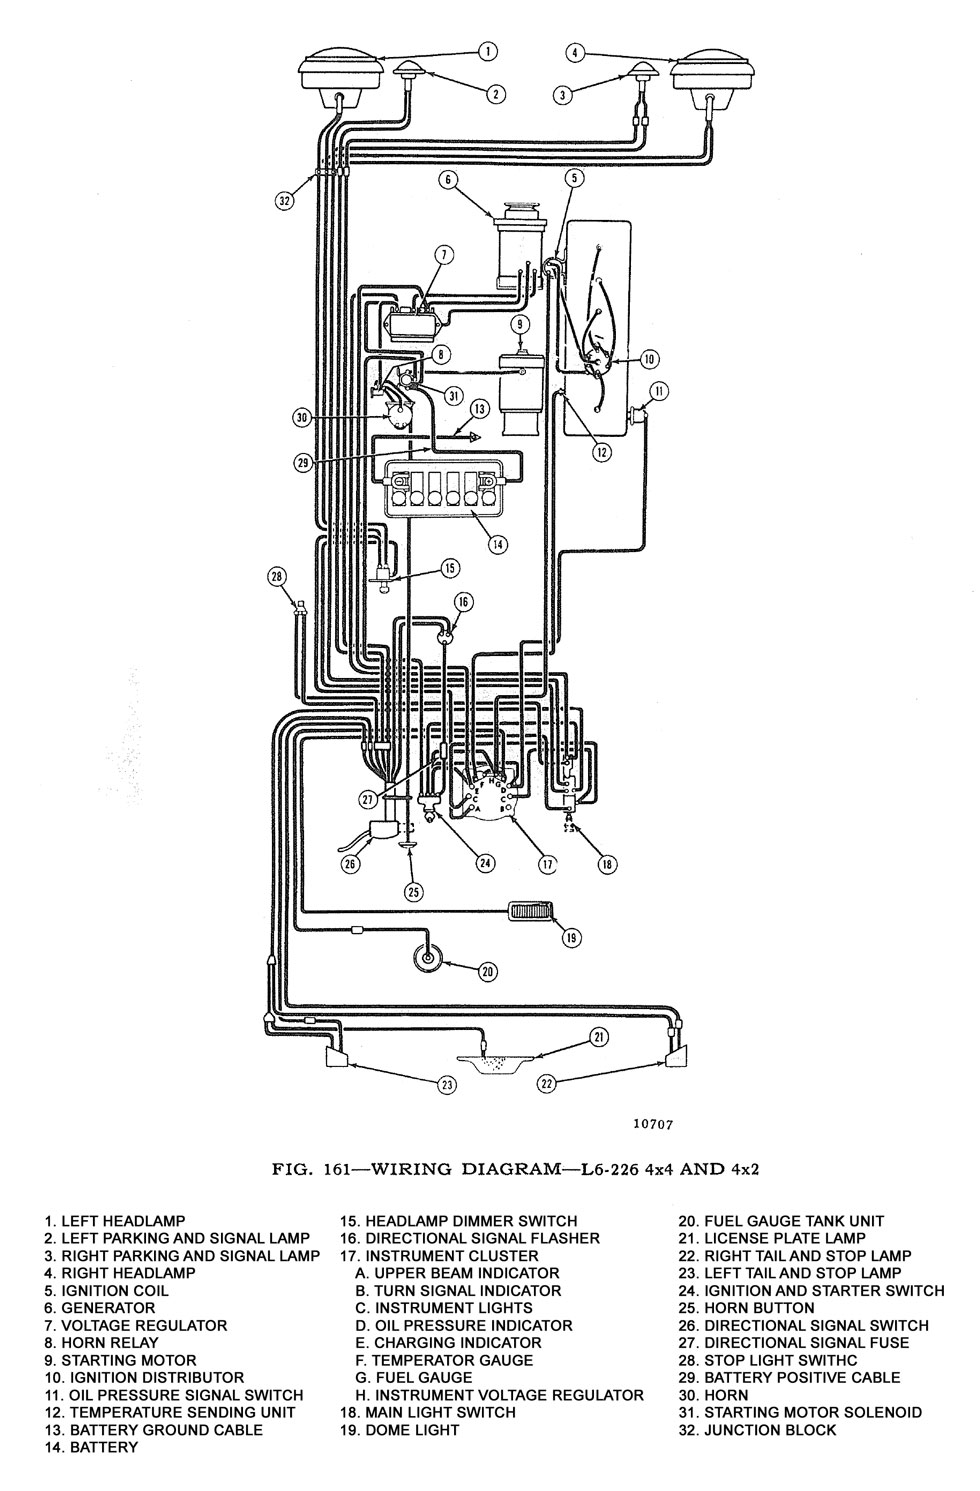 medium resolution of wiring diagram l6 226 4x4 and 4x2 57 willys wiring diagram